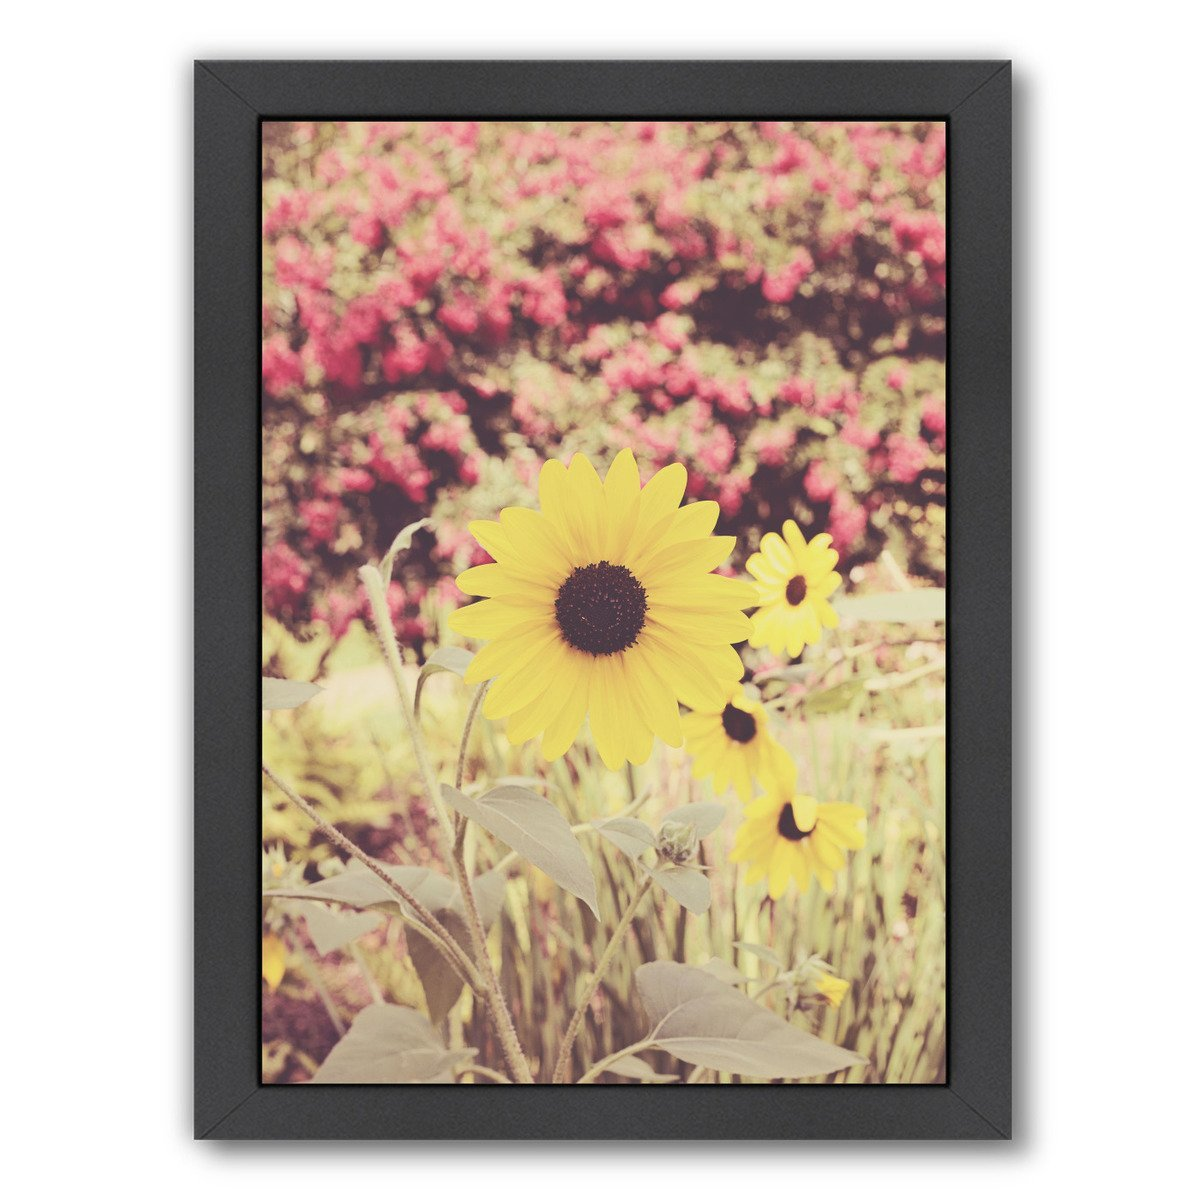 Among The Wildflowers By The Gingham Owl - Black Framed Print - Wall Art - Americanflat